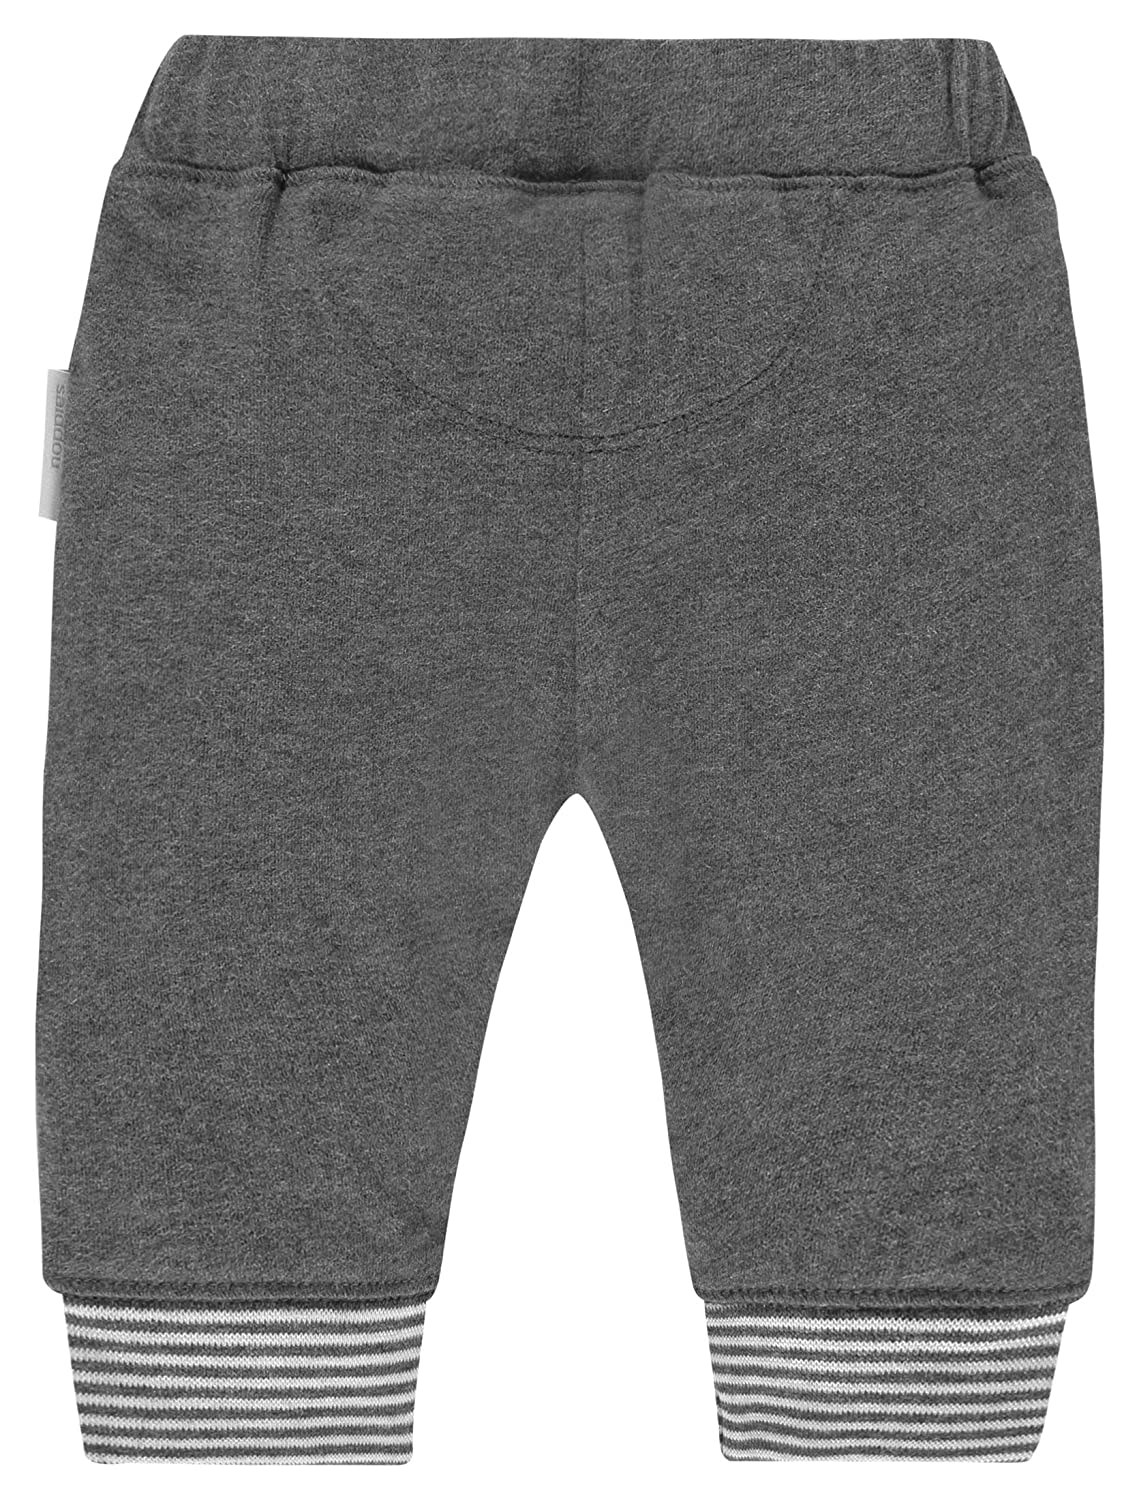 Noppies Unisex Baby U Pants Relaxed Qolora Hose